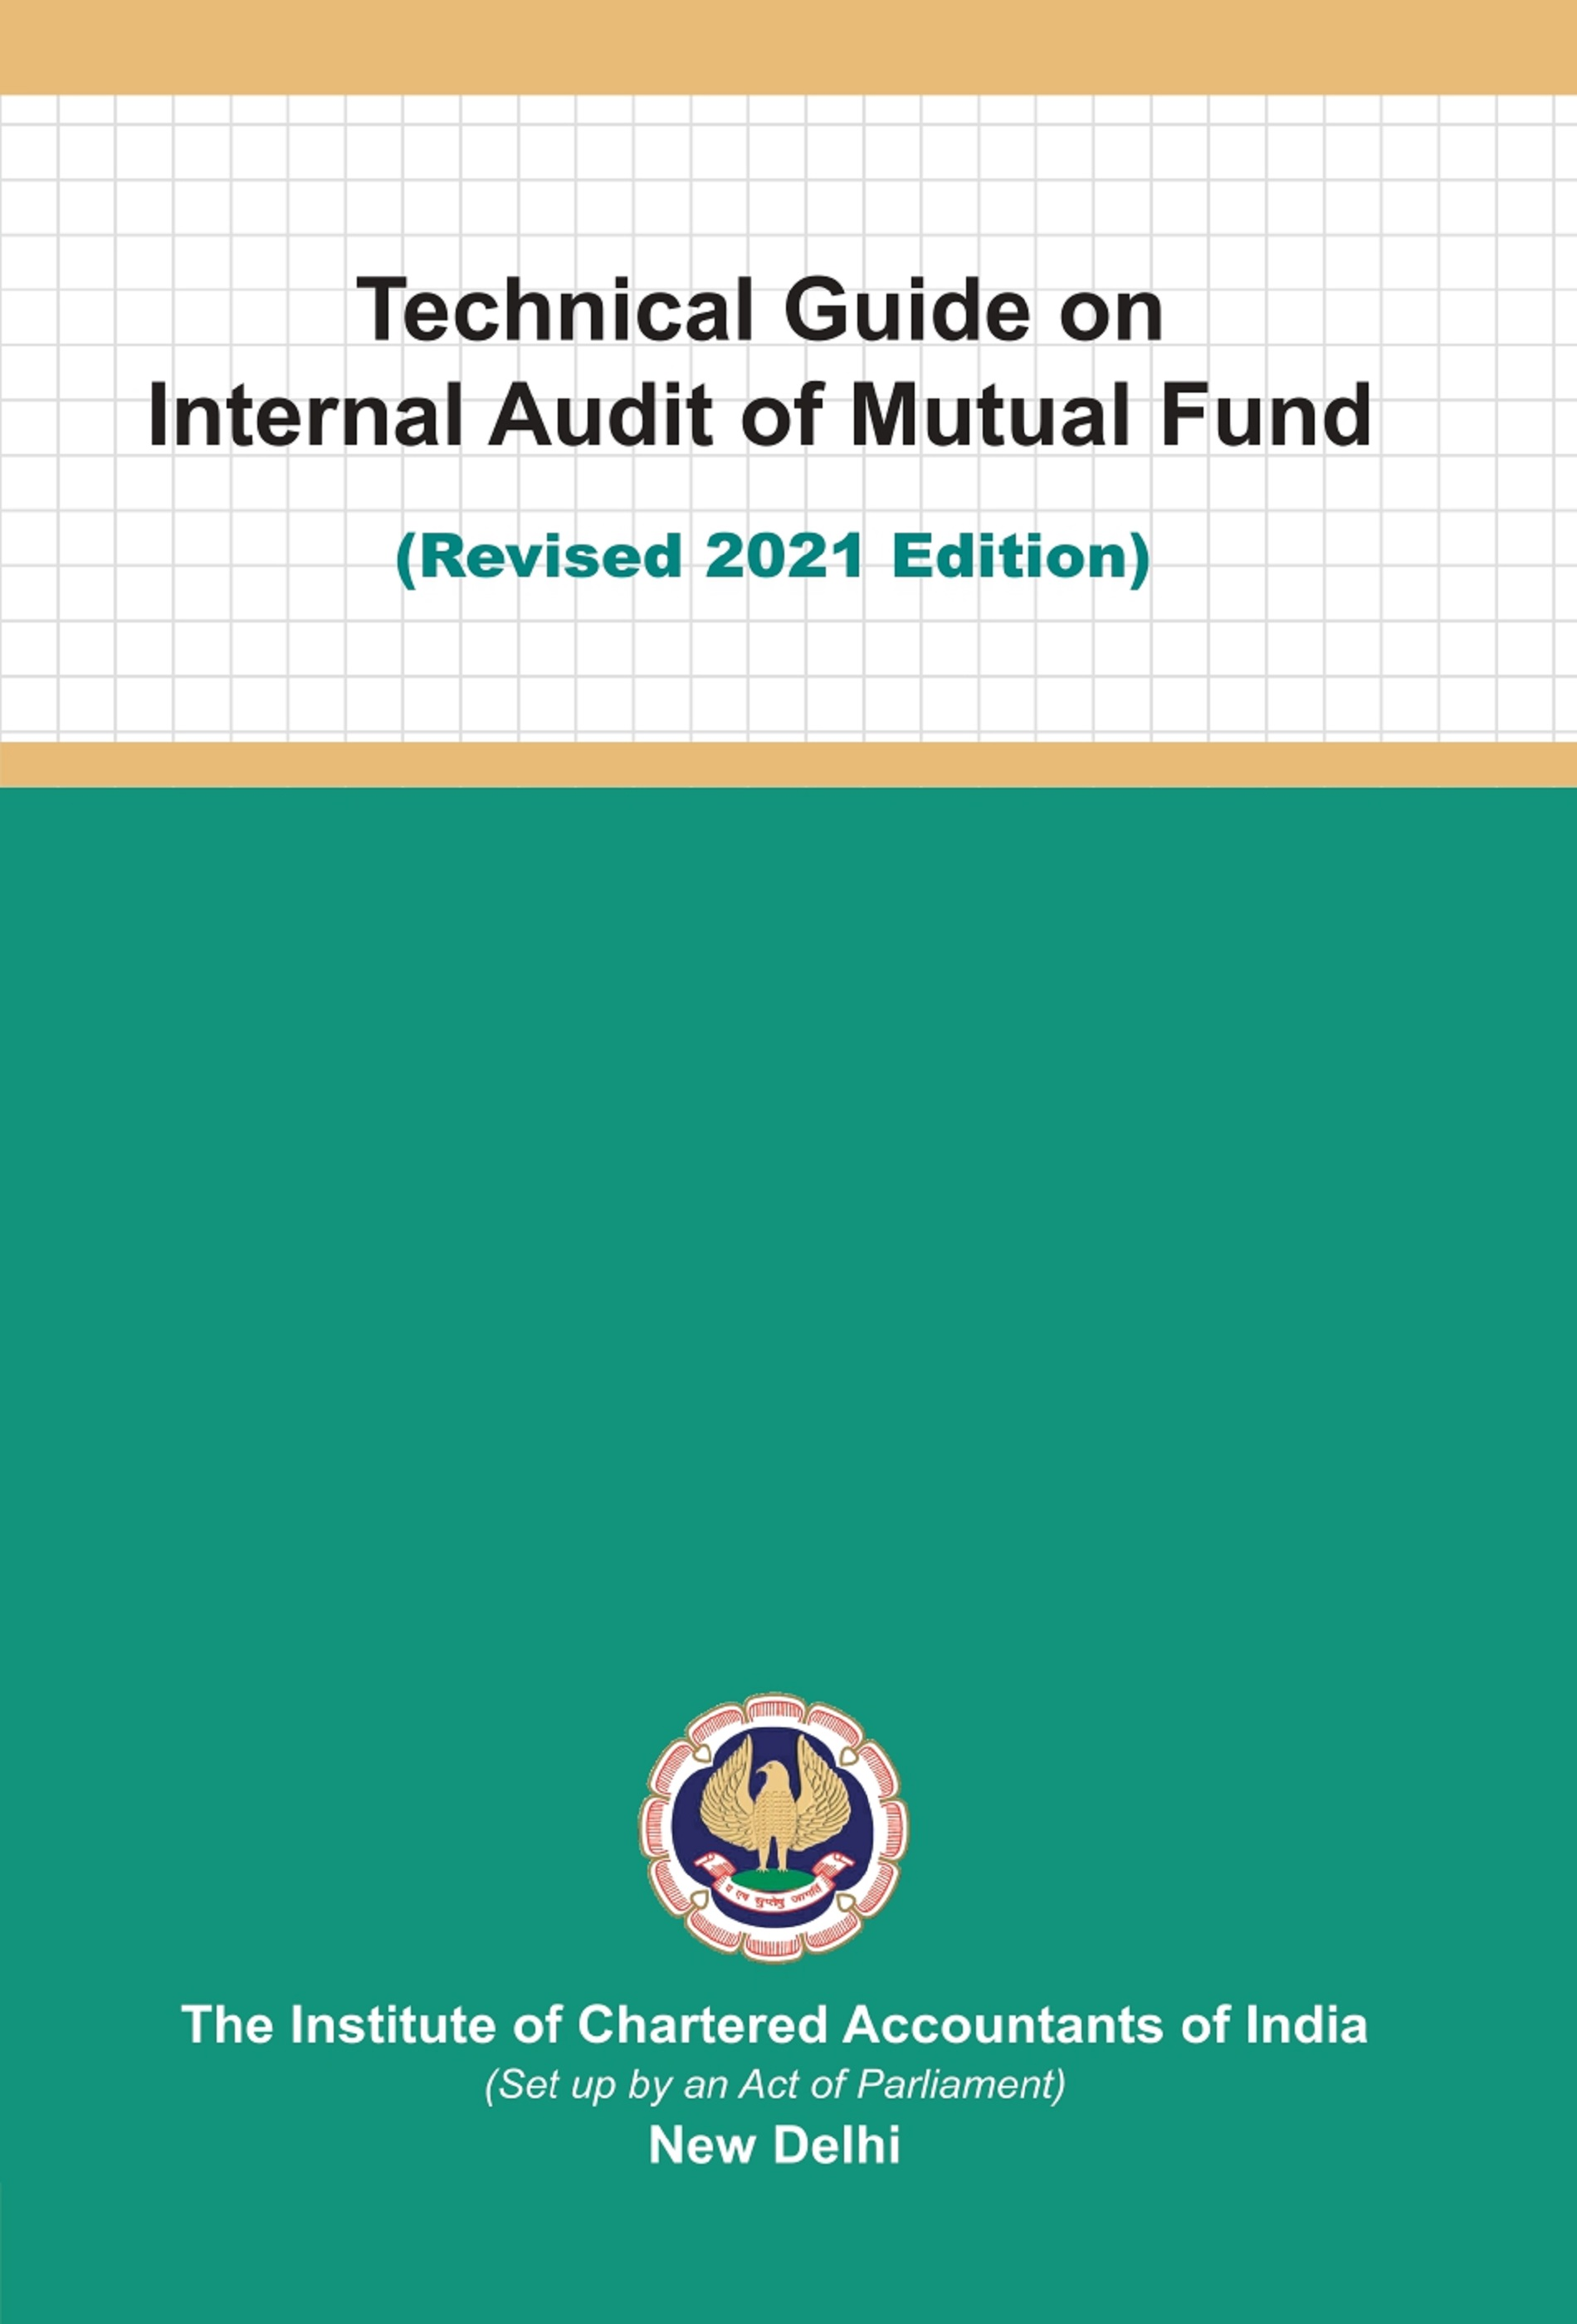 Technical Guide on Internal Audit of Mutual Fund (Revised 2021 Edition)